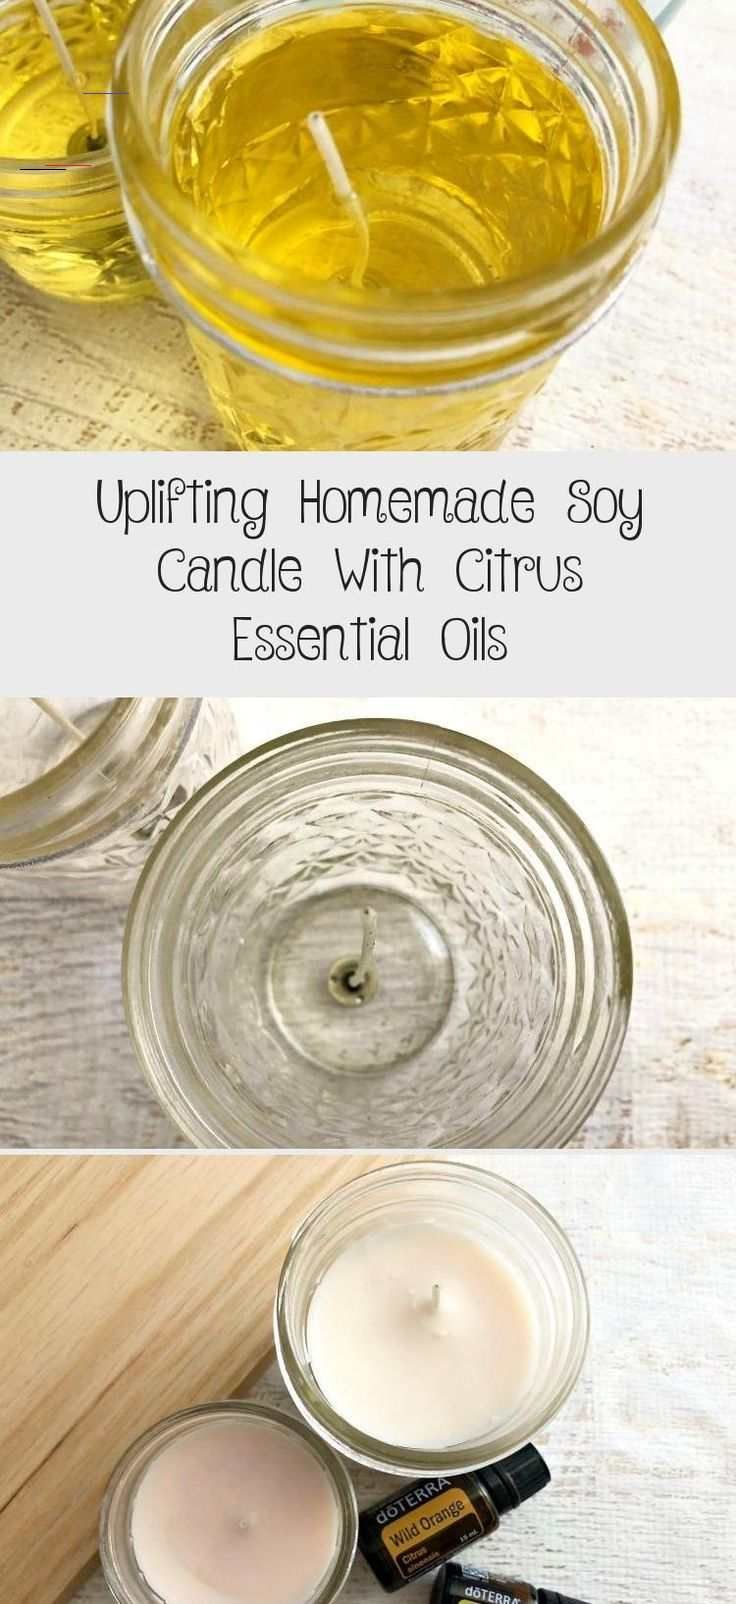 Uplifting Homemade Soy Candle With Citrus Essential Oils ...